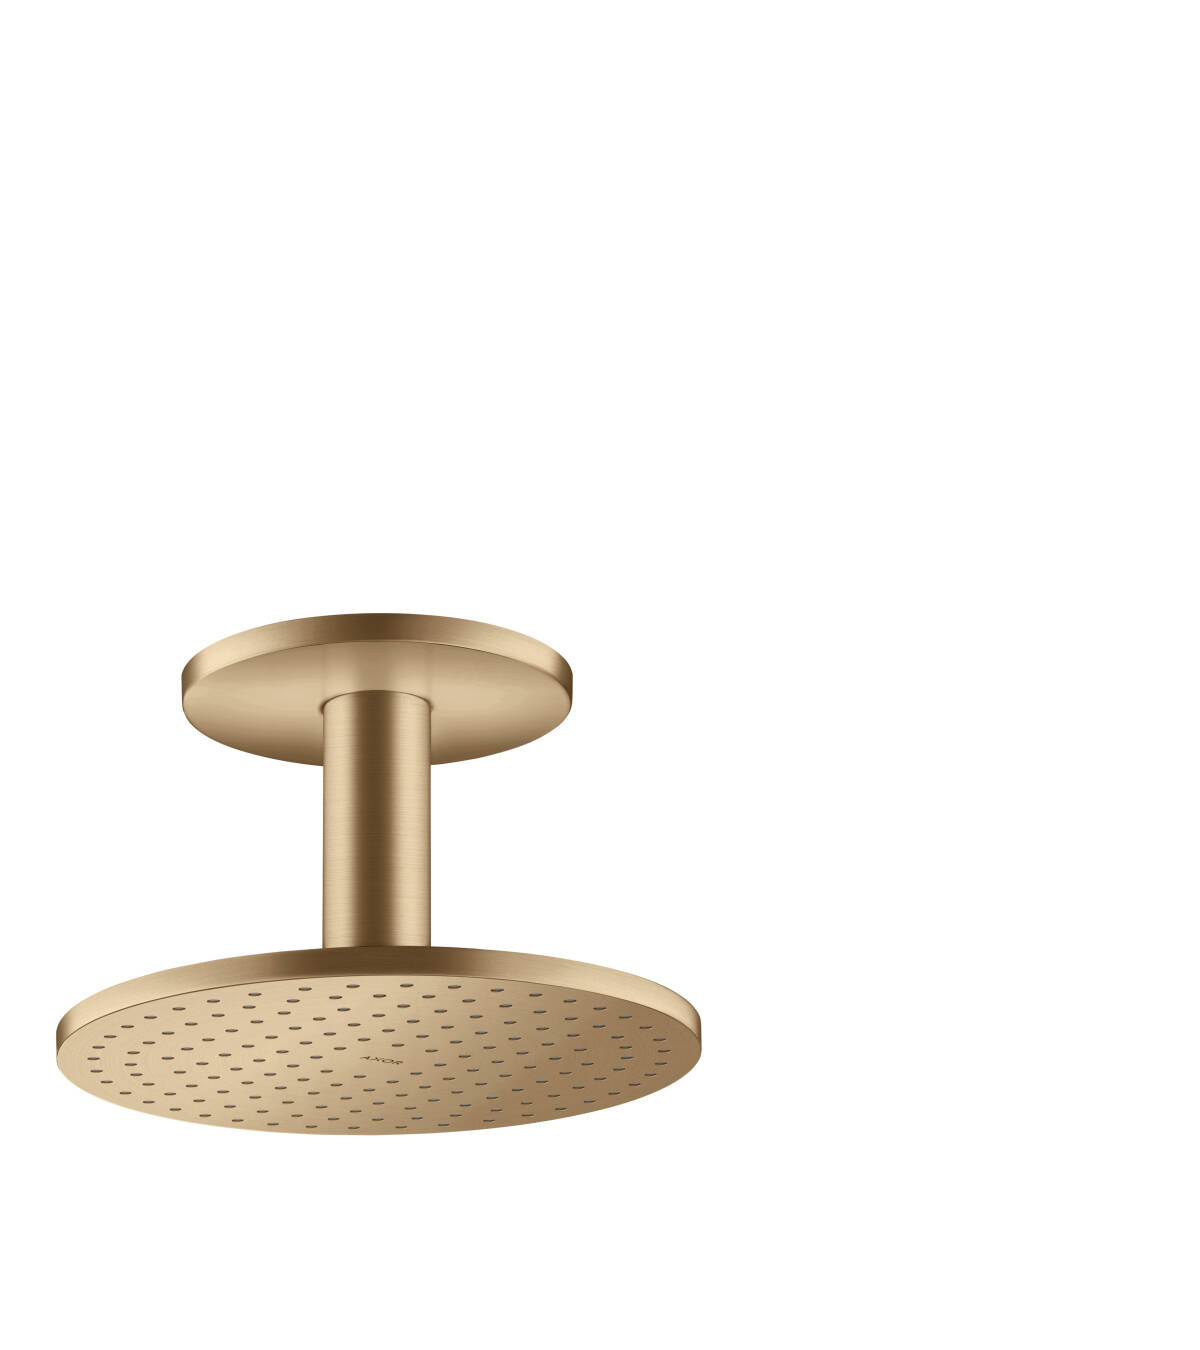 Overhead shower 250 1jet with ceiling connection, Brushed Bronze, 35286140